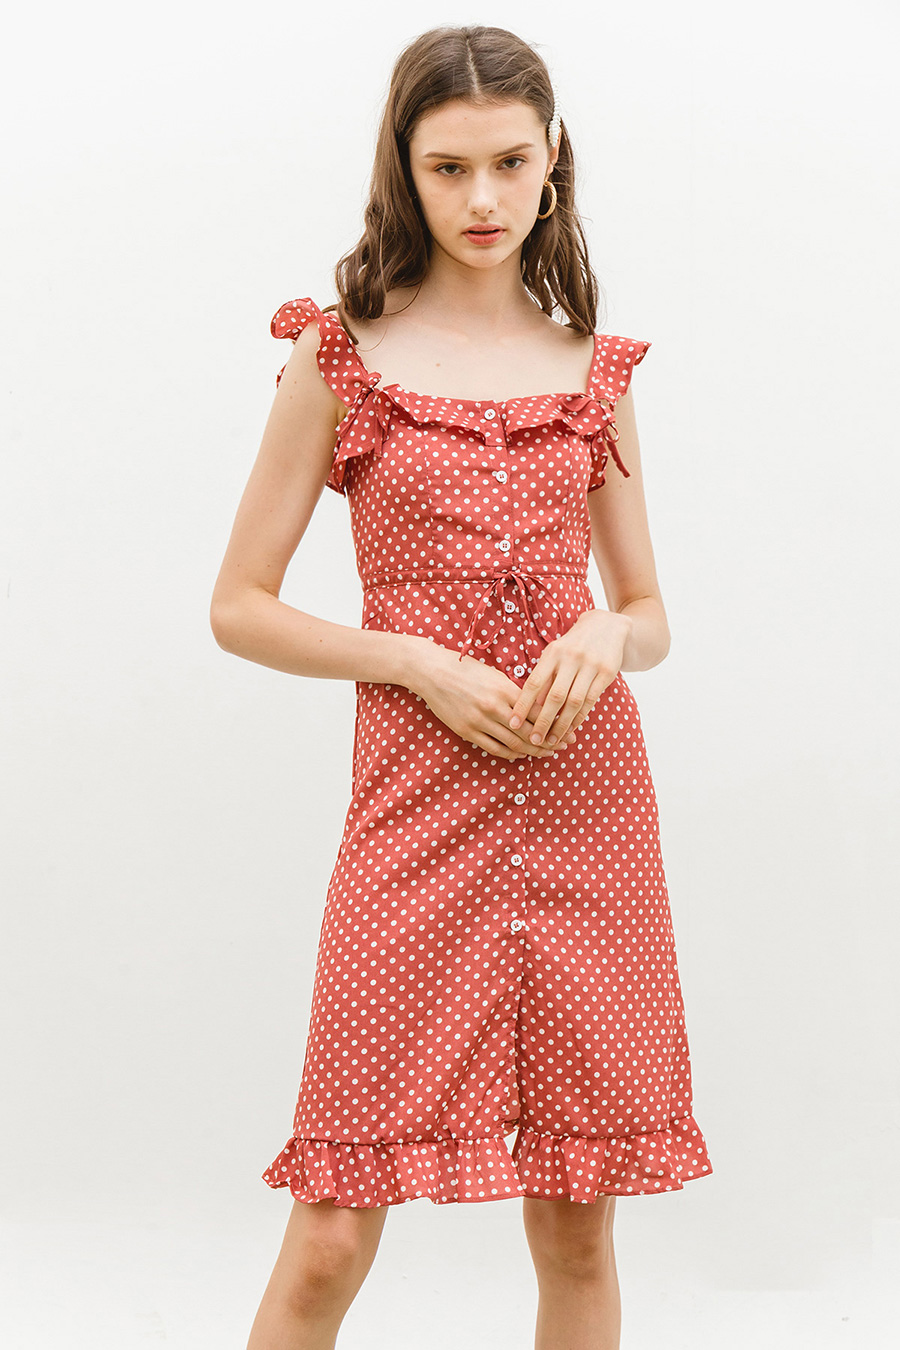 DANA DRESS - OLD ROSE